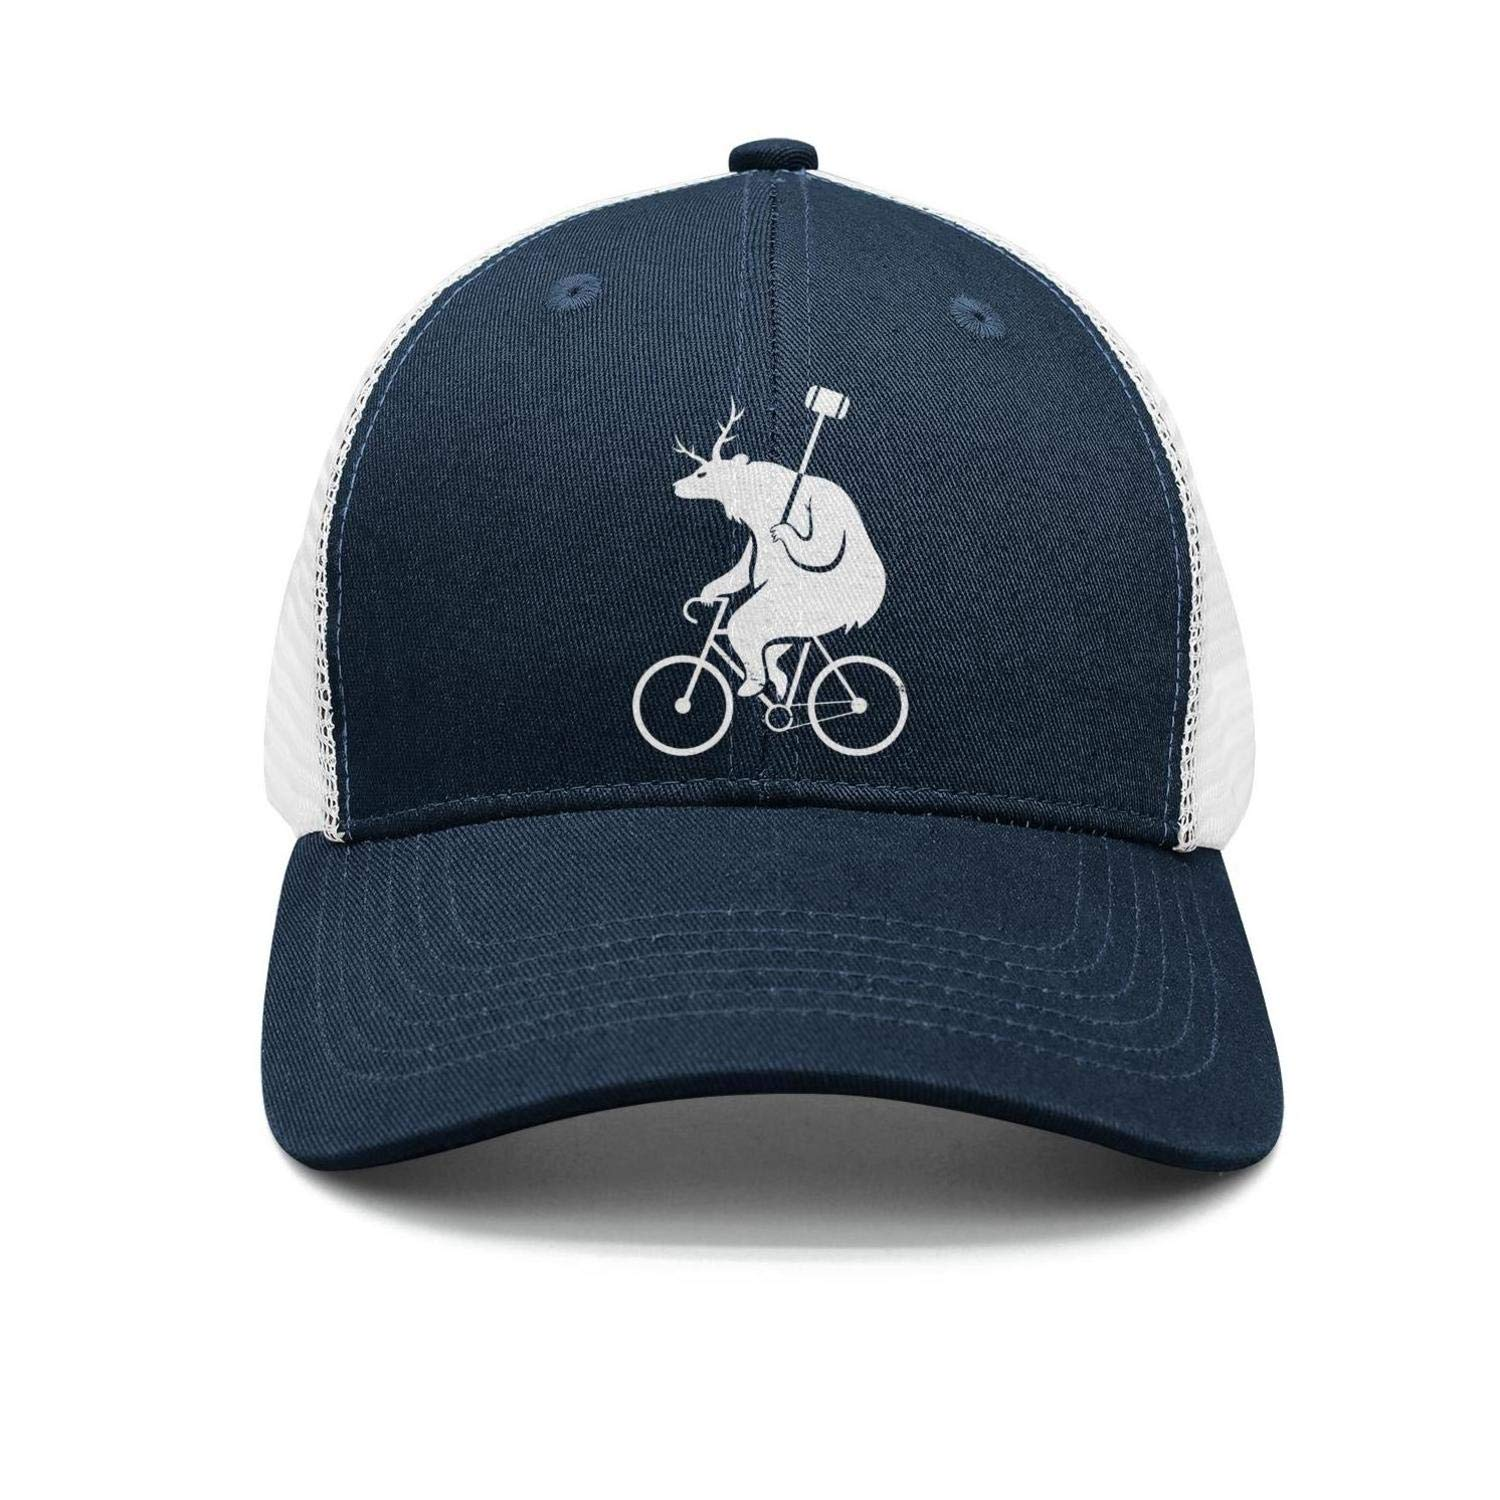 abf890cec Amazon.com  ZYNEW Bike Polo Bear Unisex Casual Mesh Flat Cap Fitted Snapback  hat Sport Cap One Size  Clothing